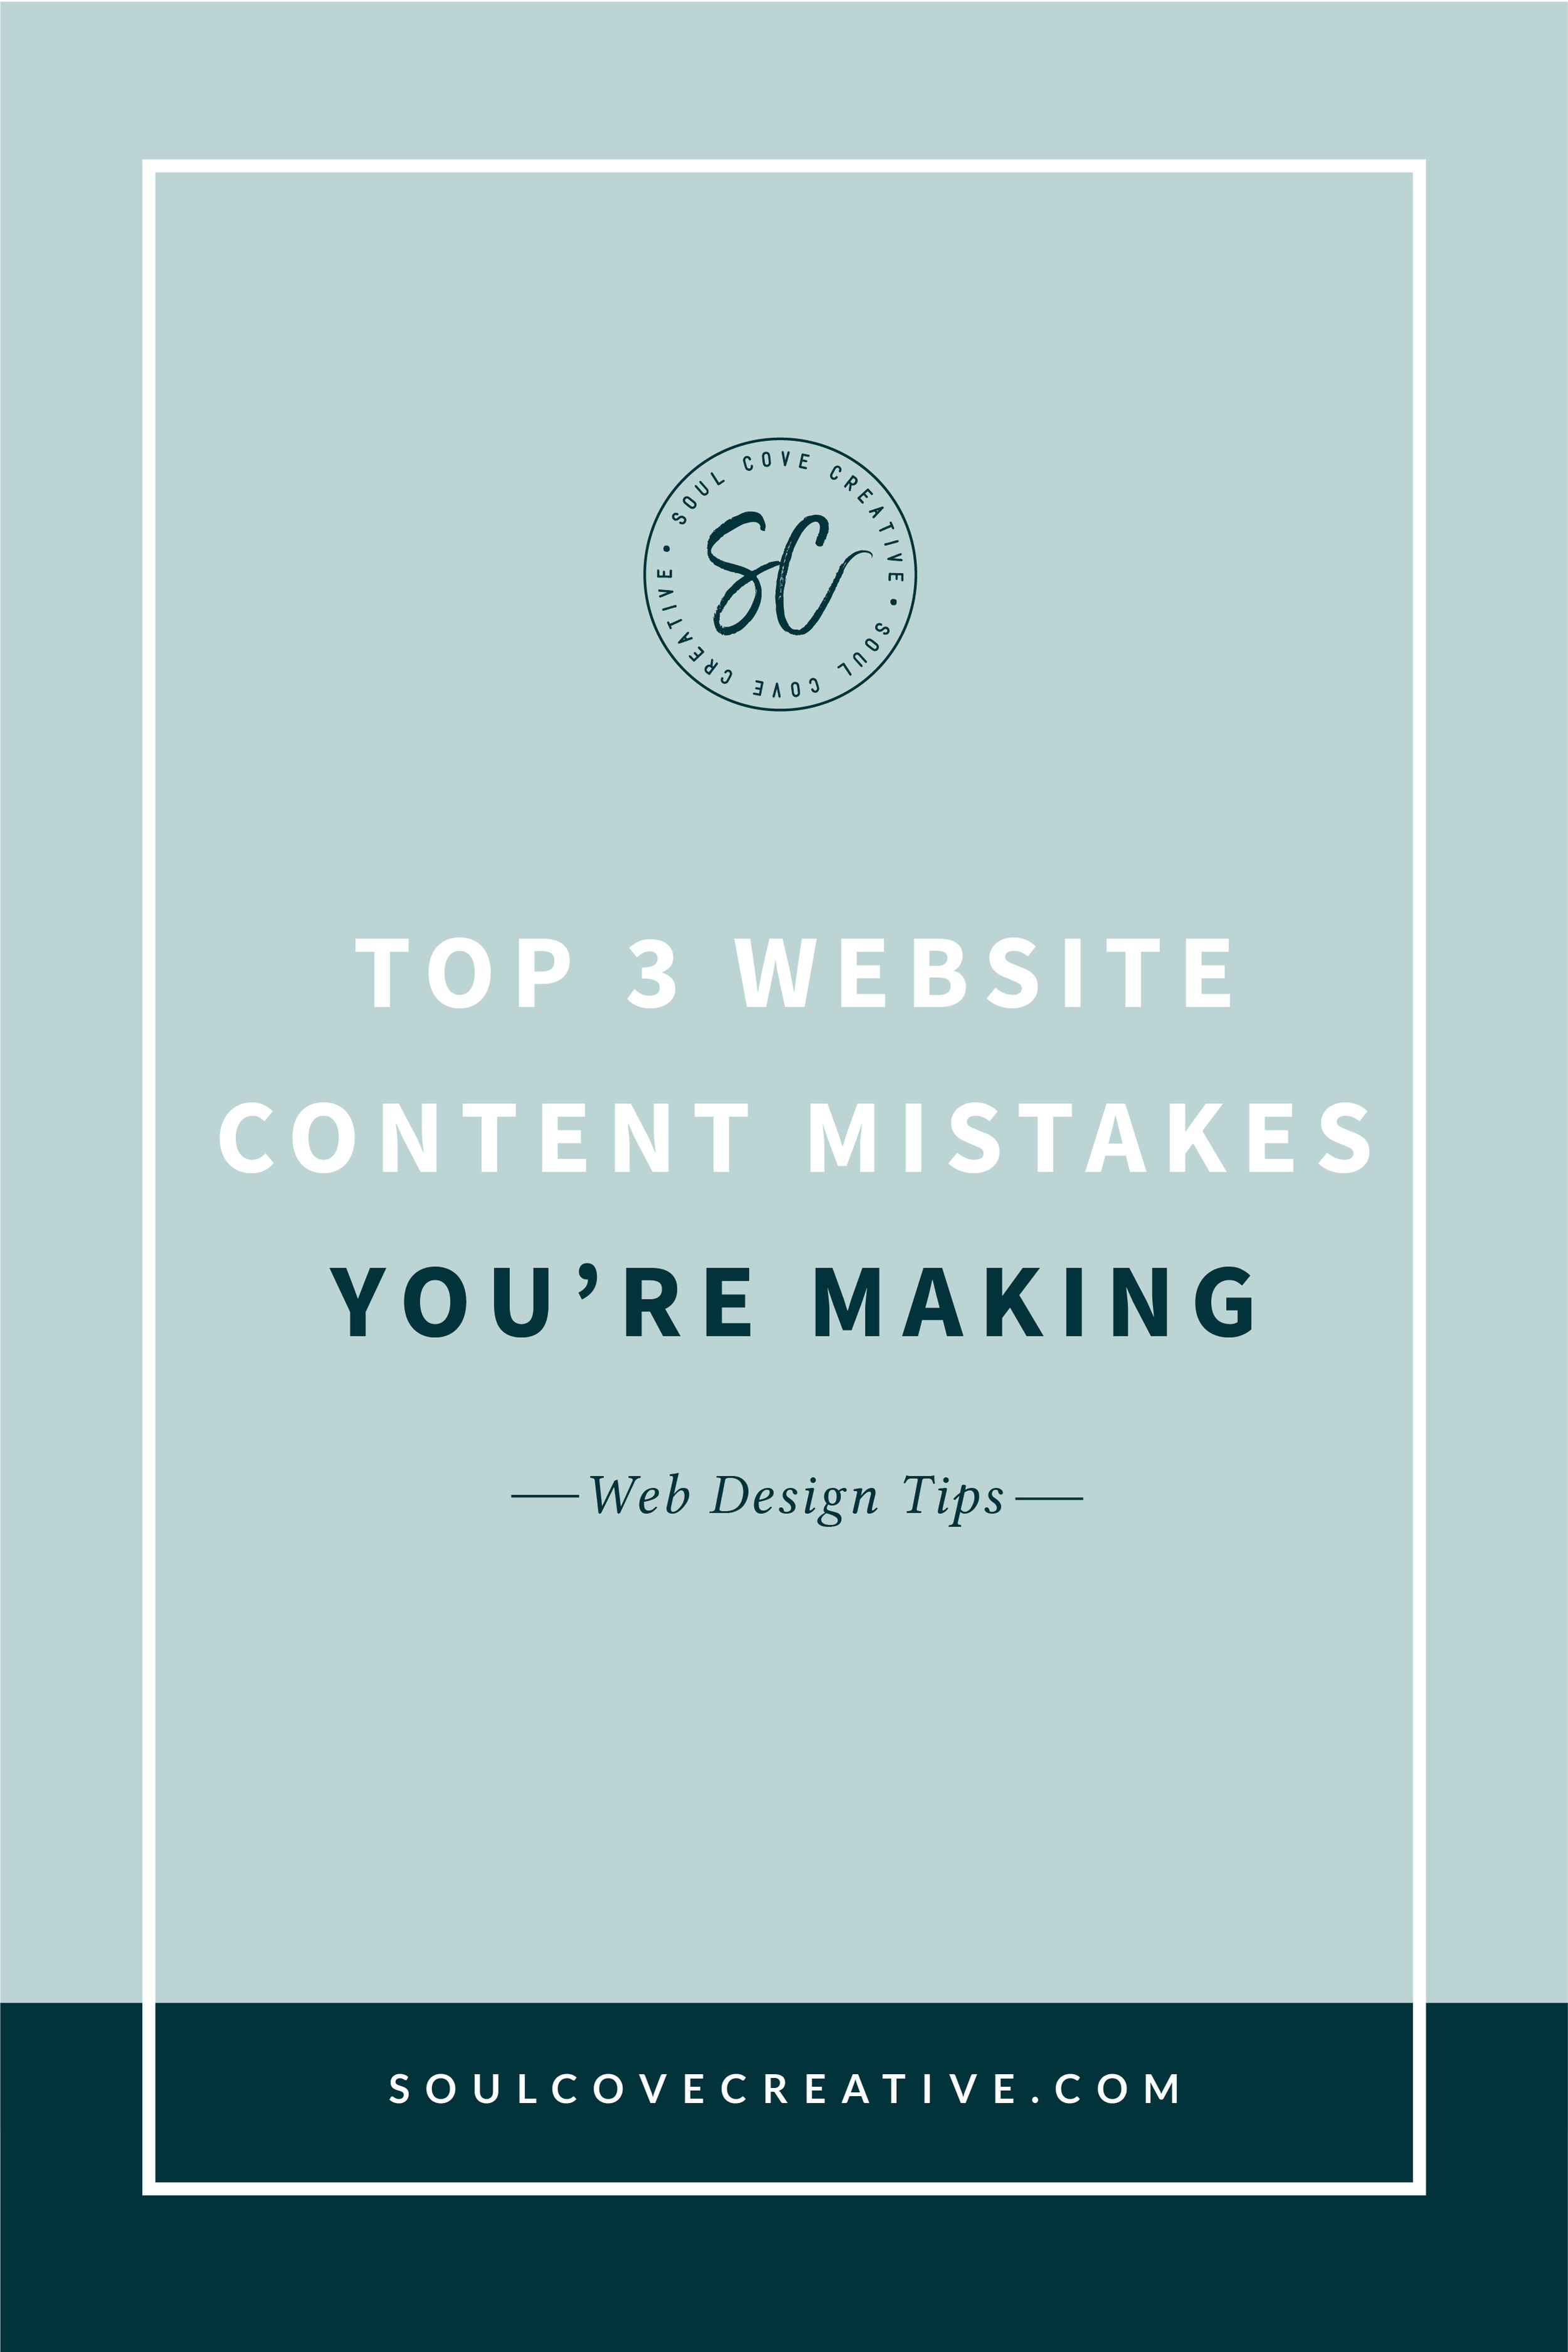 Top 3 Website Content Mistakes You're Making